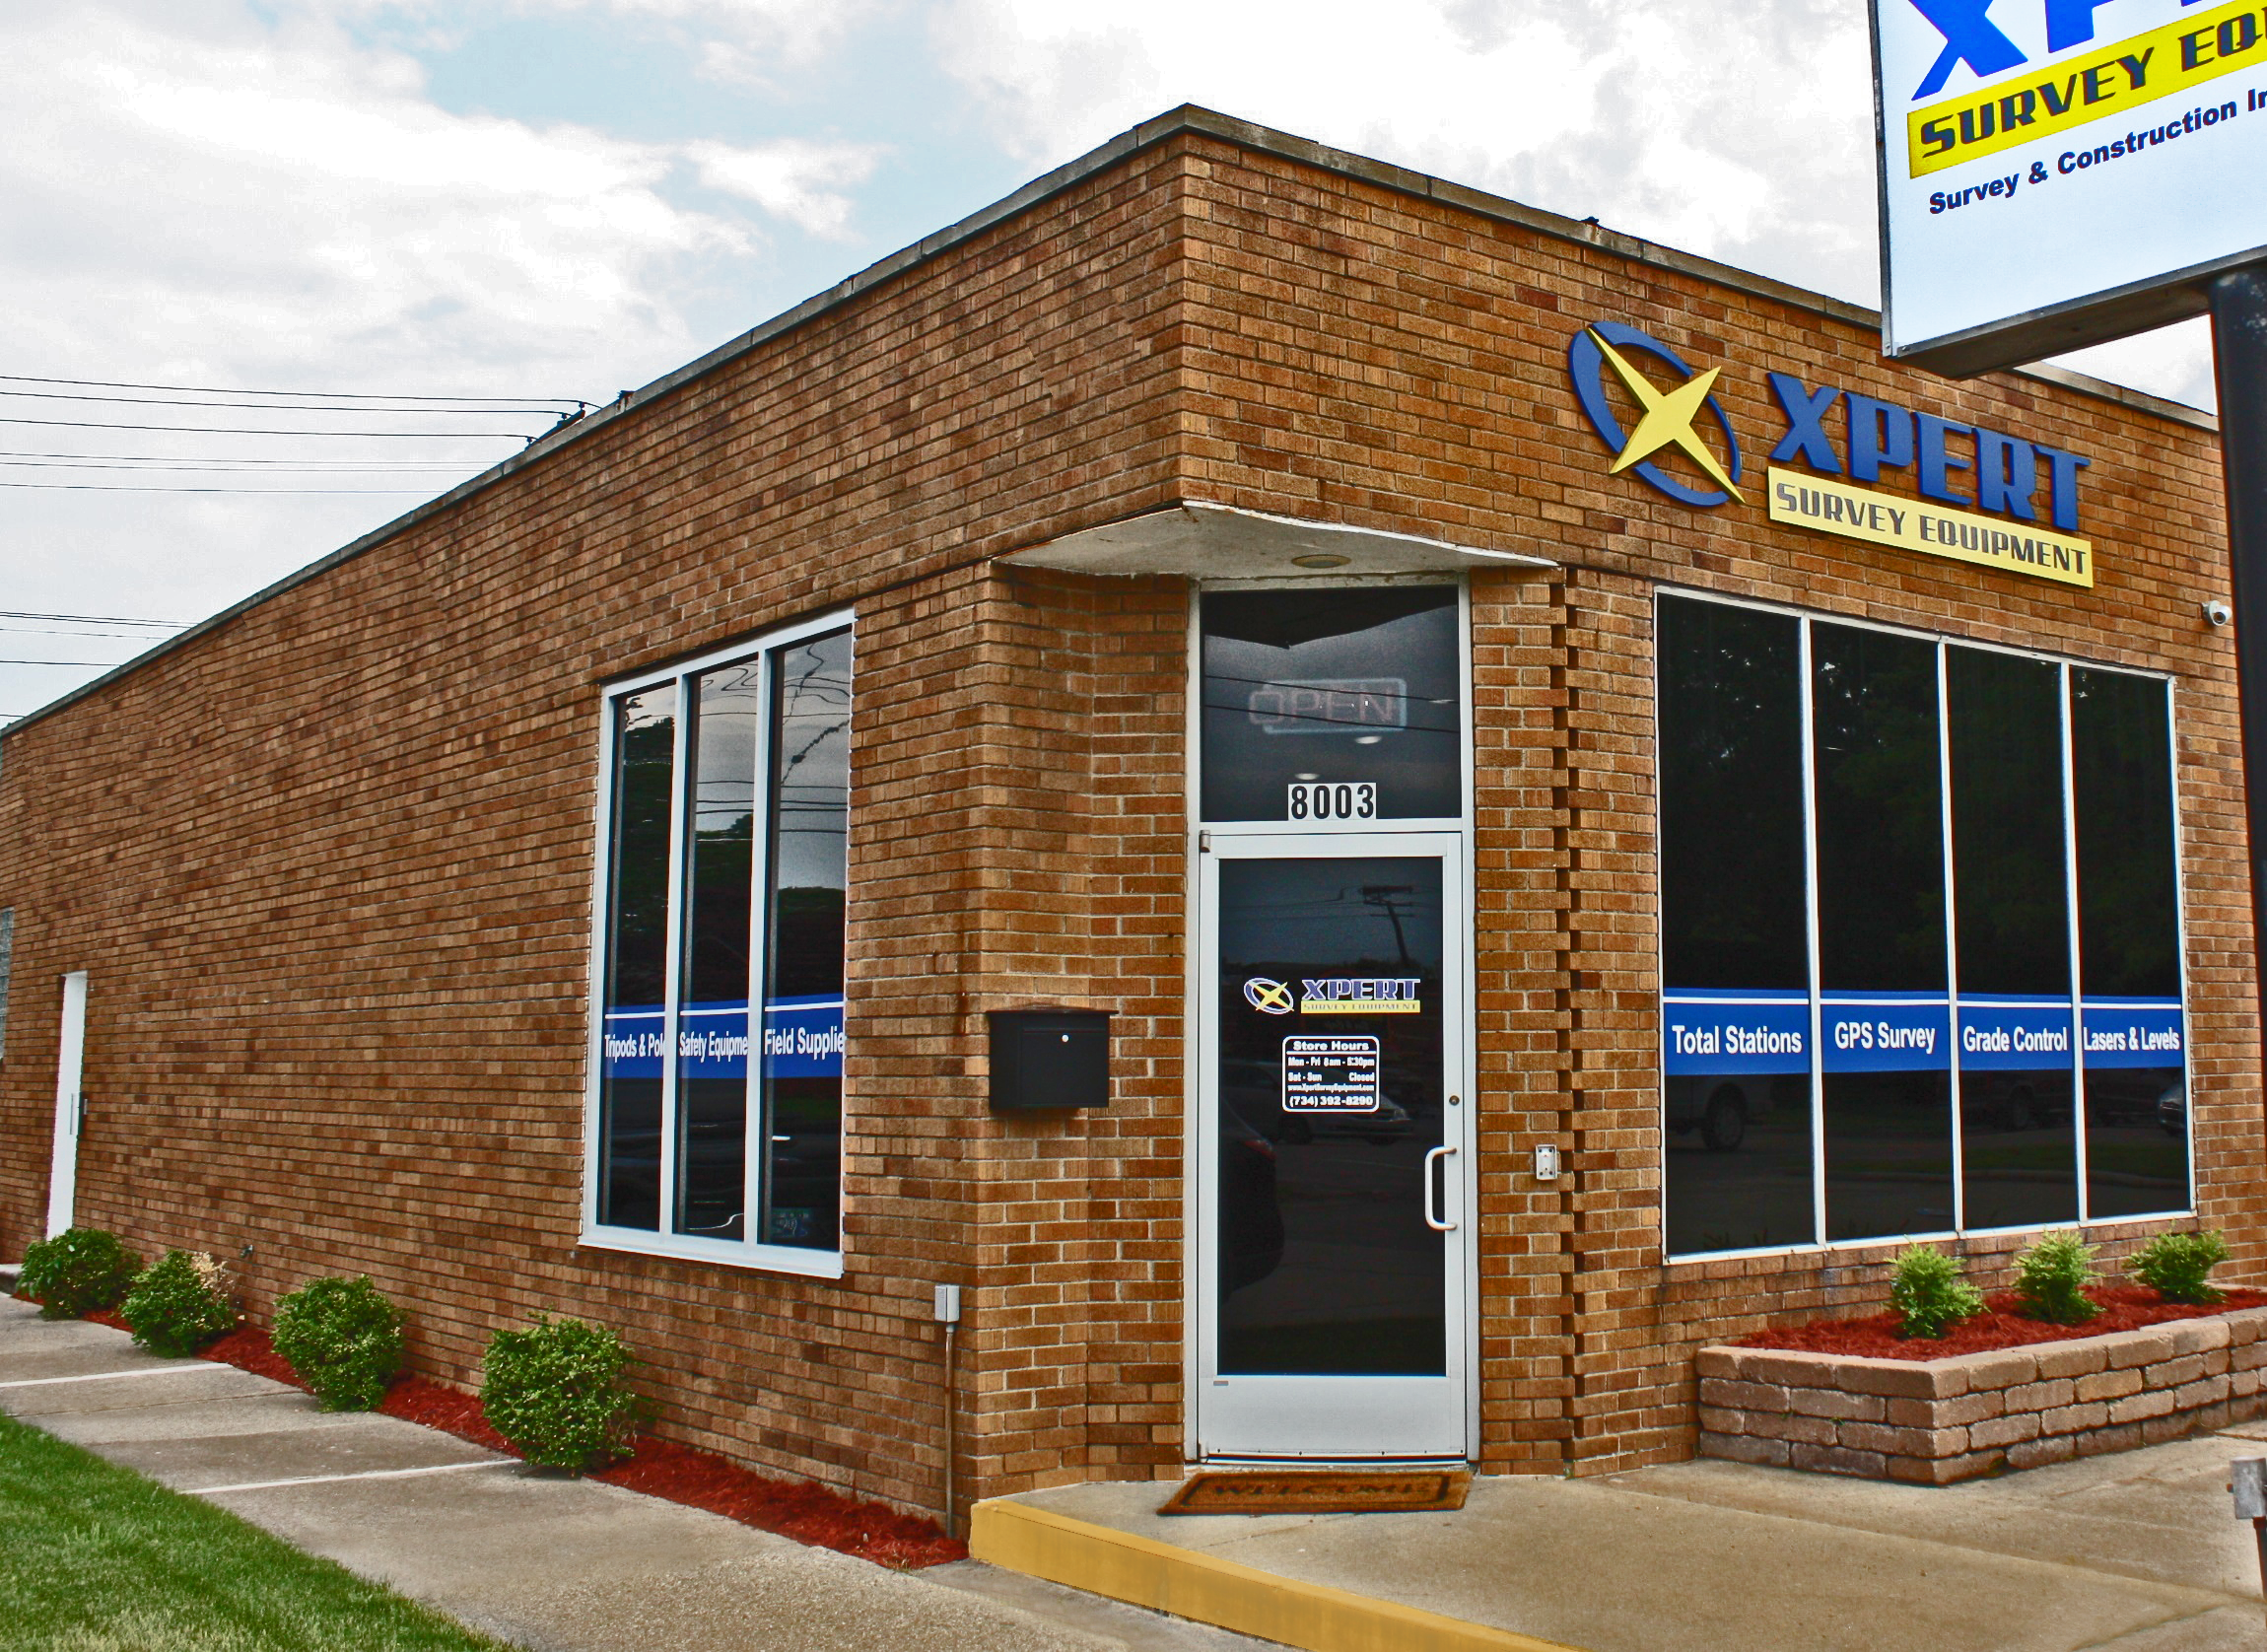 Xpert Survey Equipment Storefront